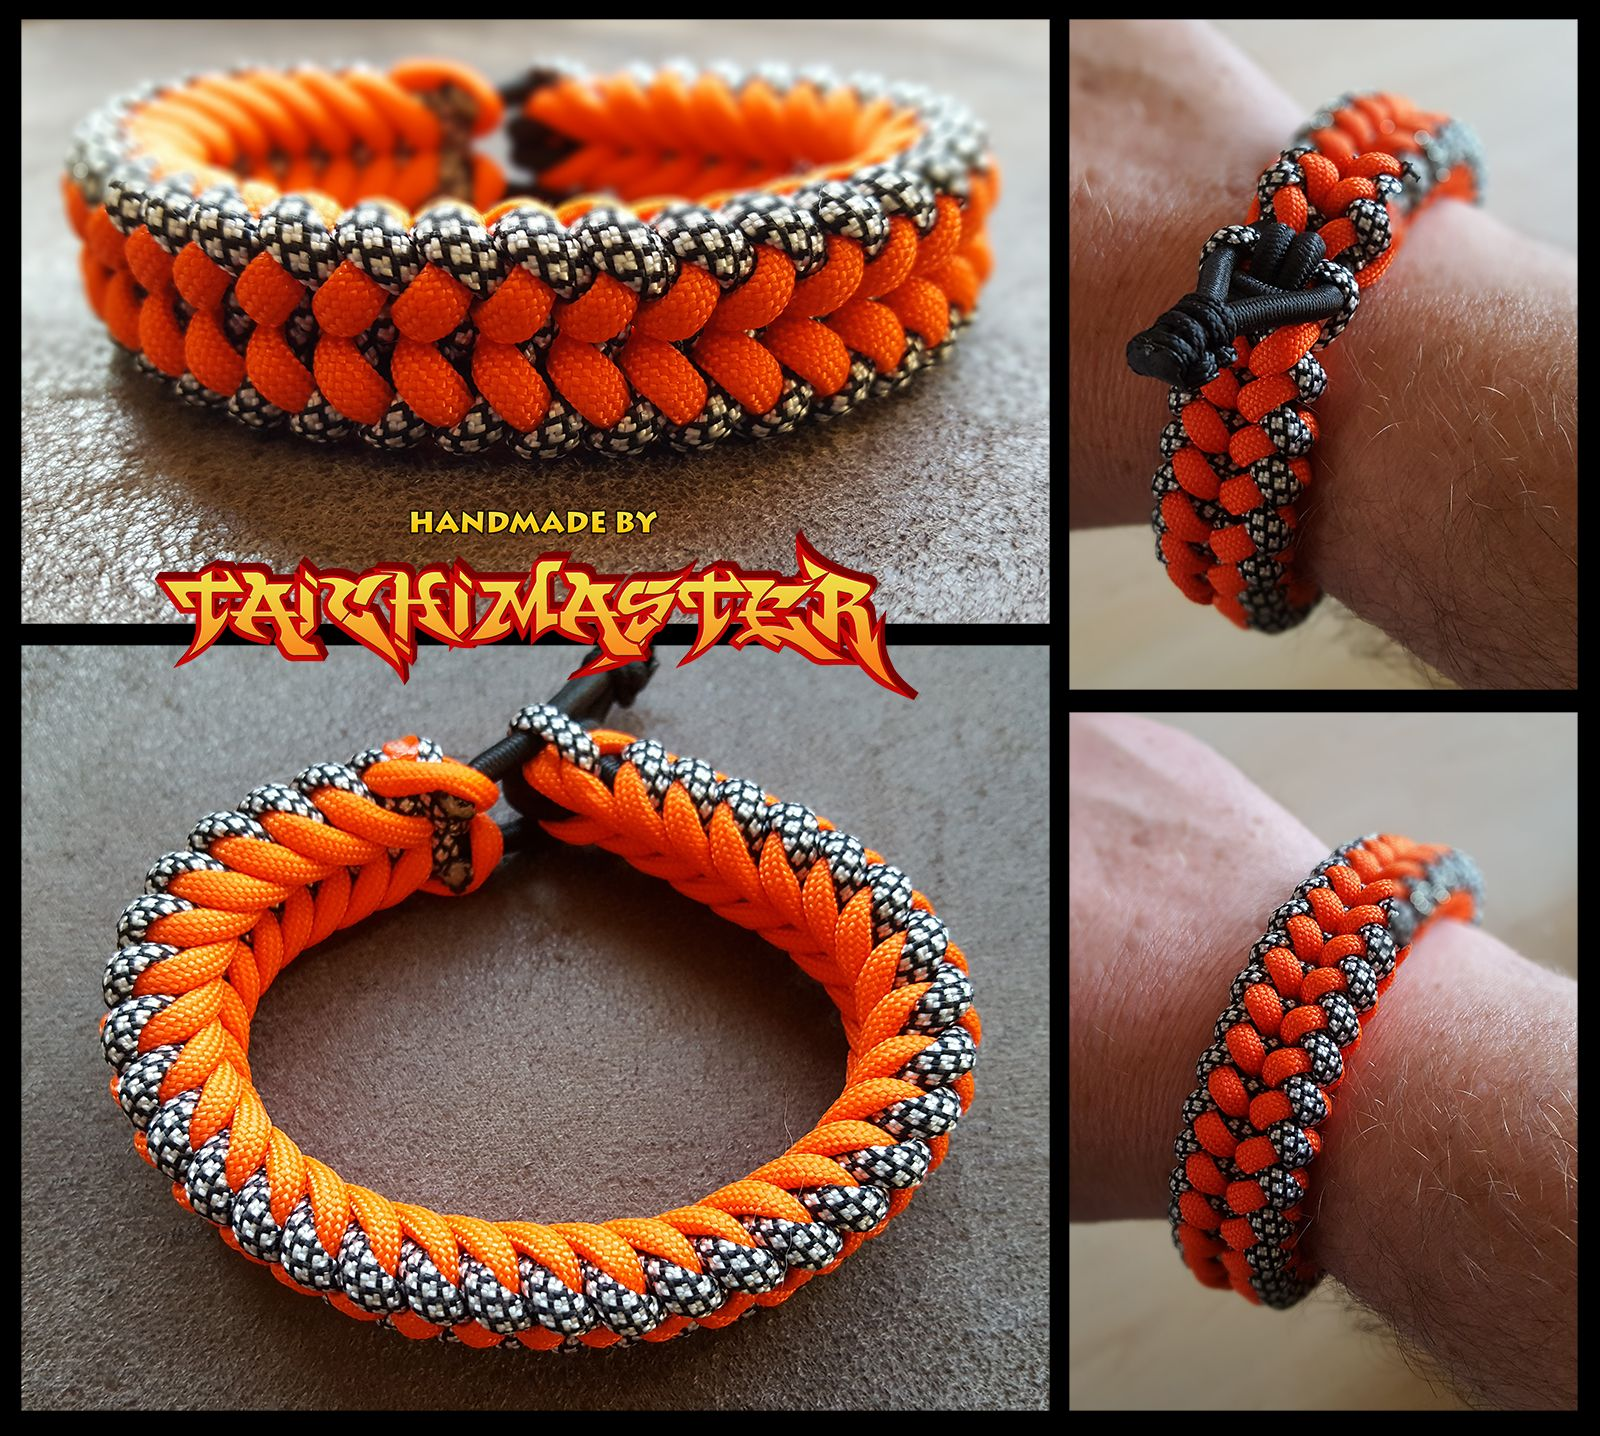 Summer Colored Sanctified Bracelet With Elastic Cord Inside Paracord Bracelet Designs Paracord Bracelets Survival Bracelet